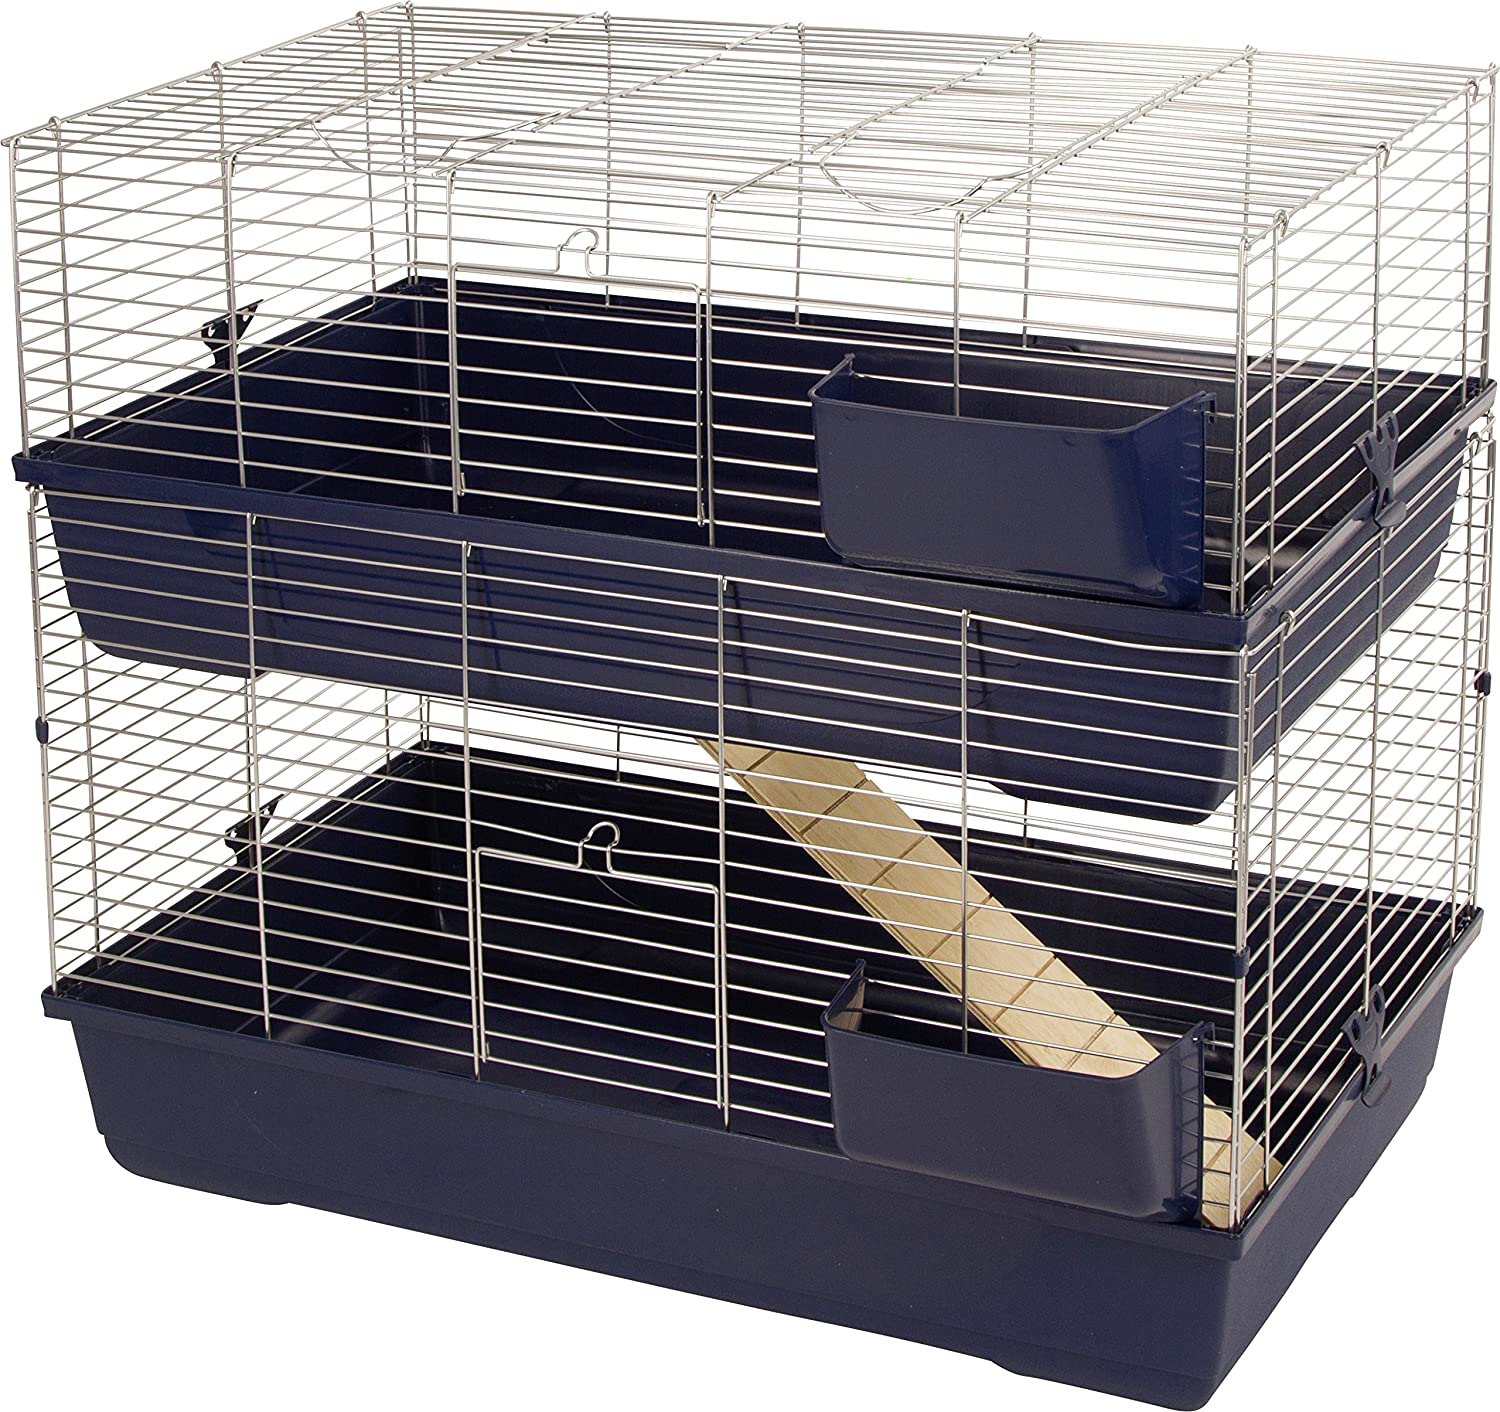 Kerbl Small Maxi Baldo Animal Cage, 100 x 53 x 86 cm